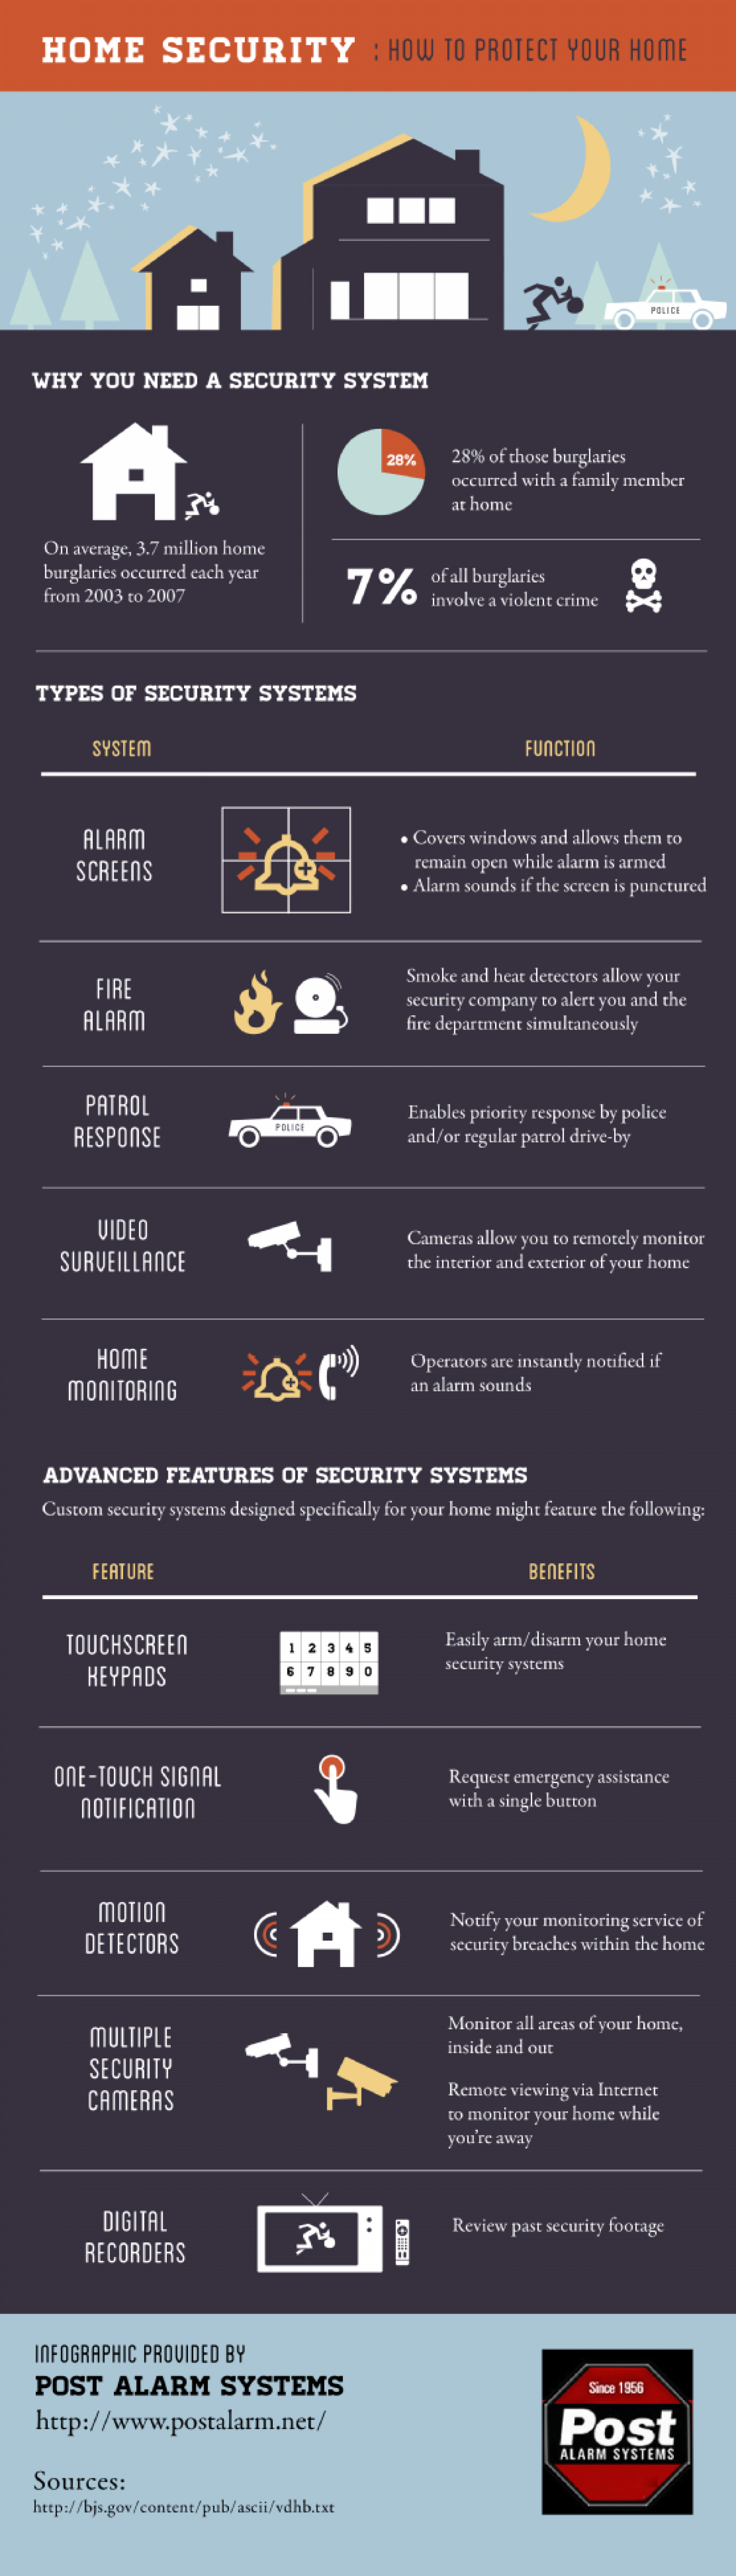 Home Security: How to Protect Your Home Infographic